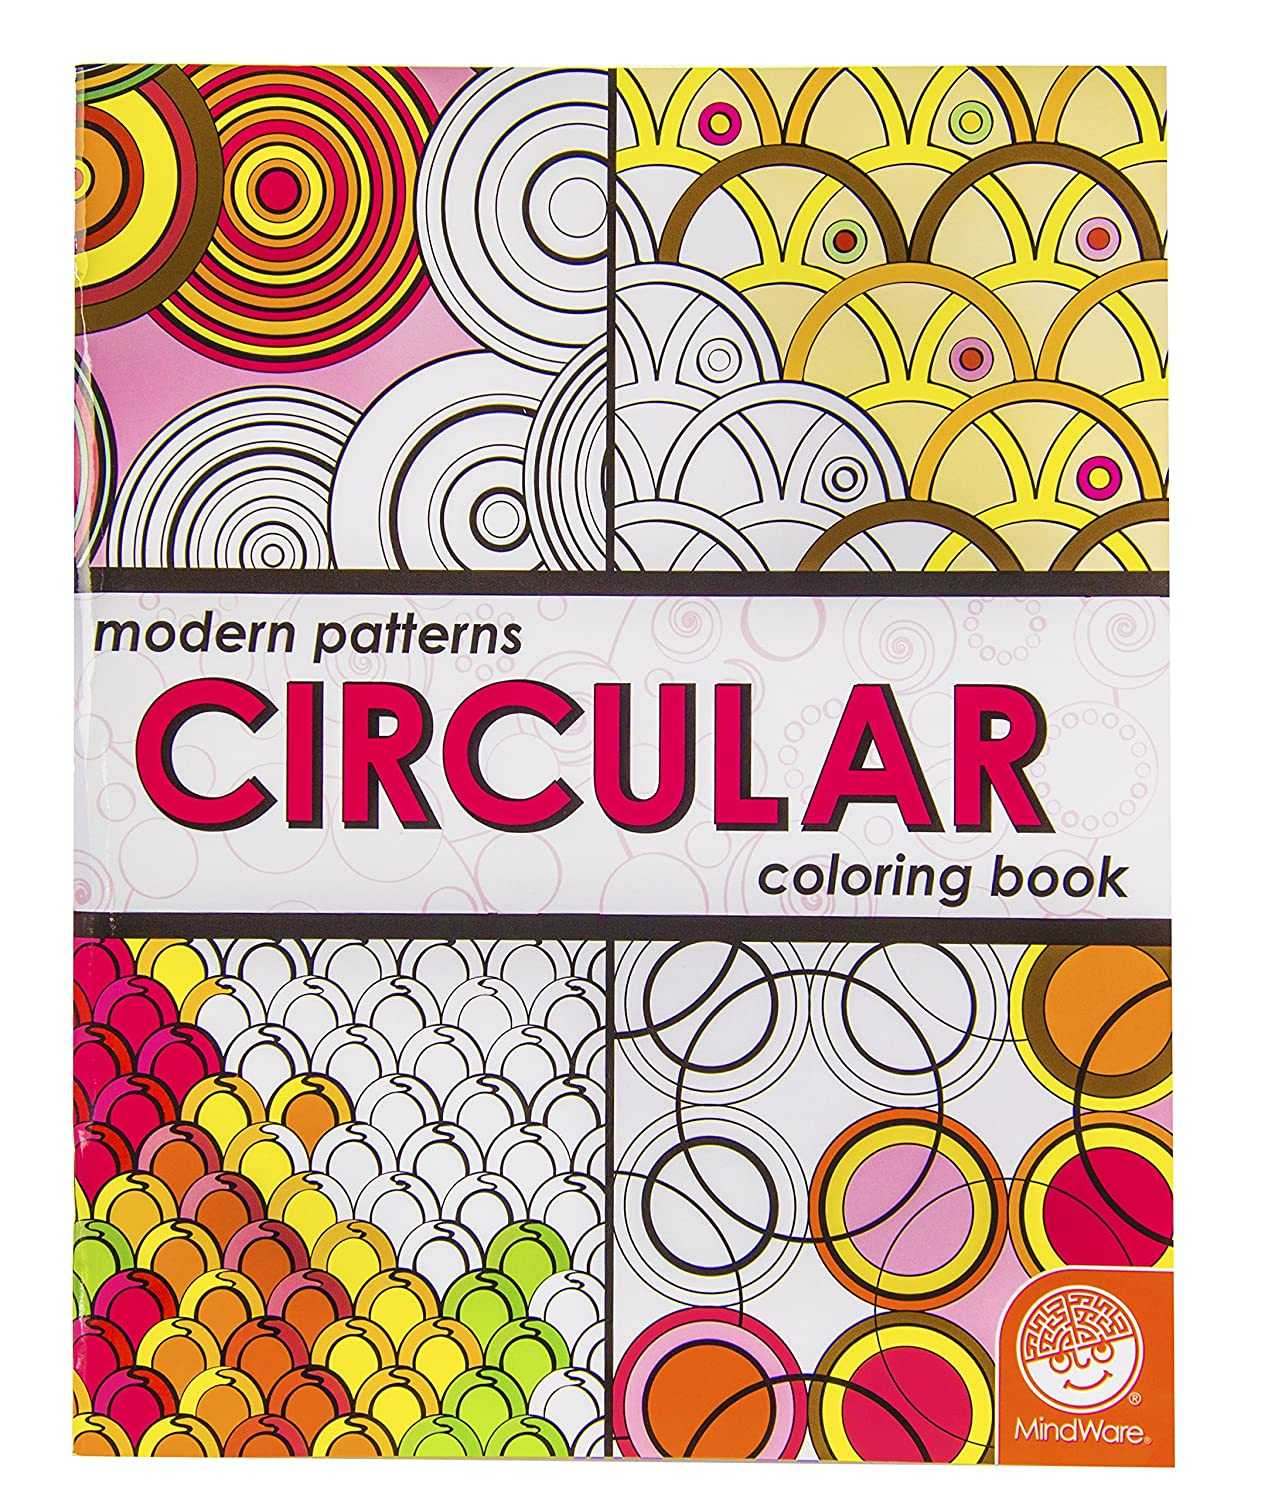 Amazoncom Modern Patterns Circular Coloring Book Toys Games